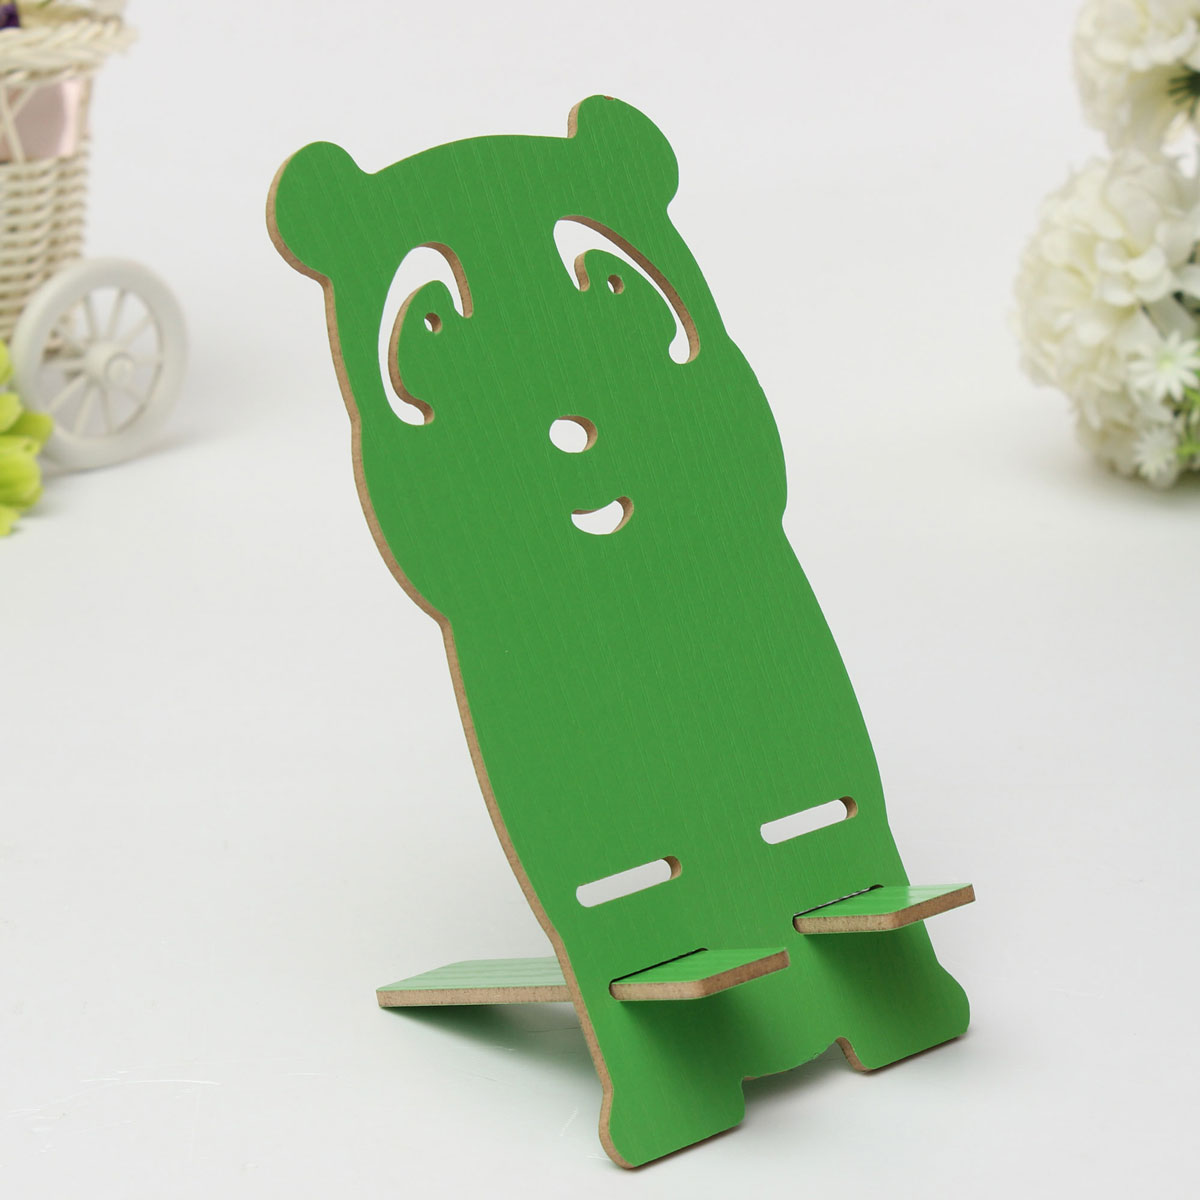 Wood Wooden Cute Panda Animal Desk Table Stand Holder For Cell